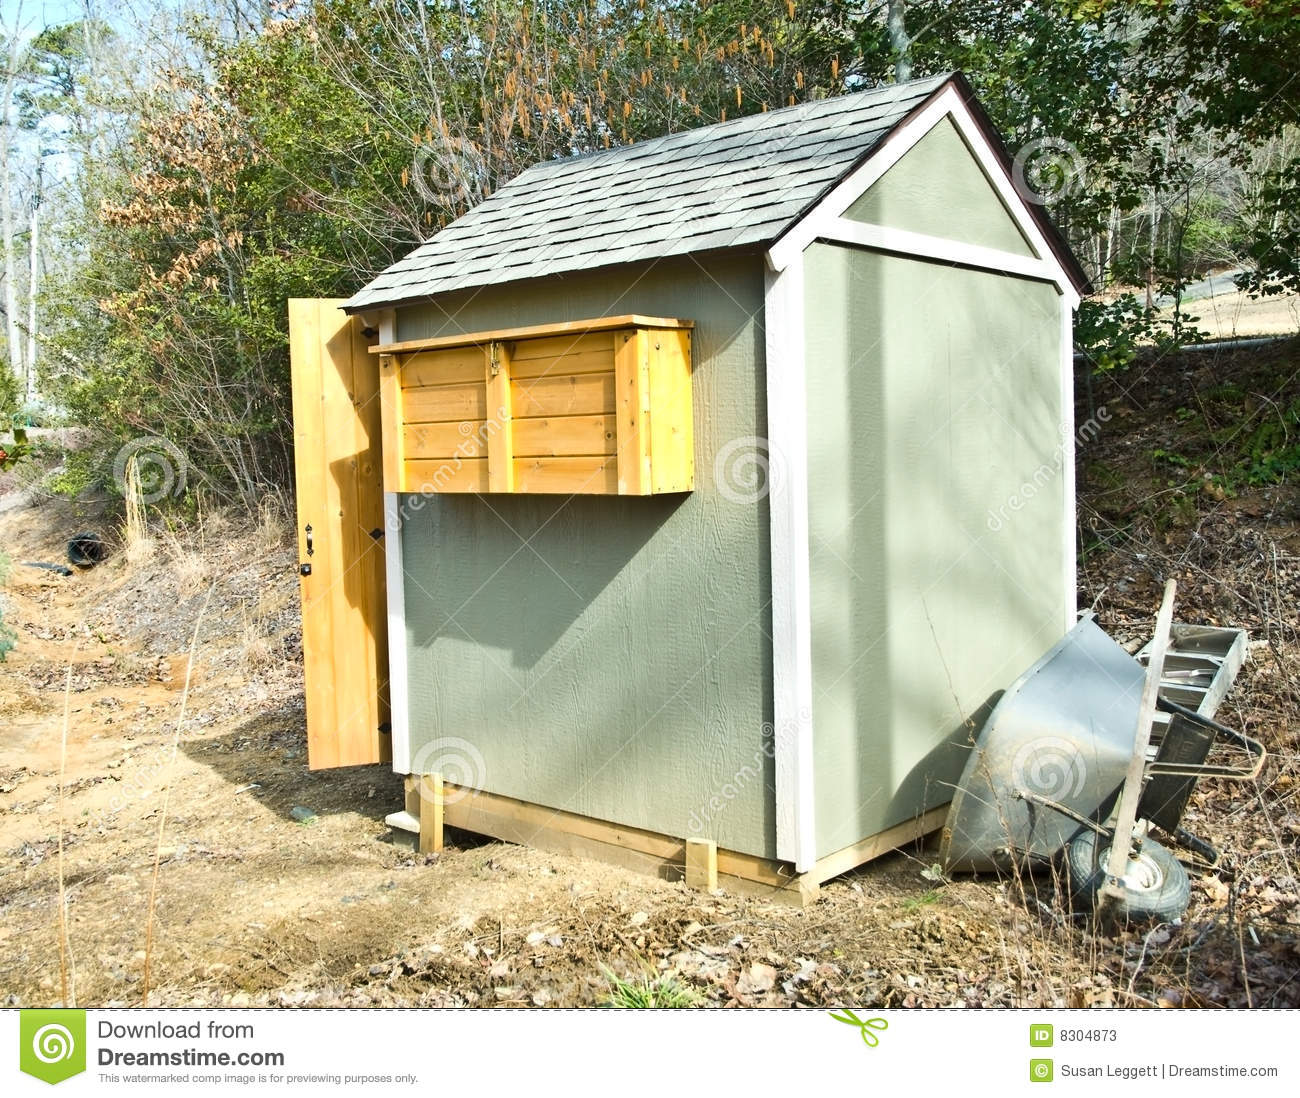 Small garden shed stock photos image 8304873 for Garden shed small